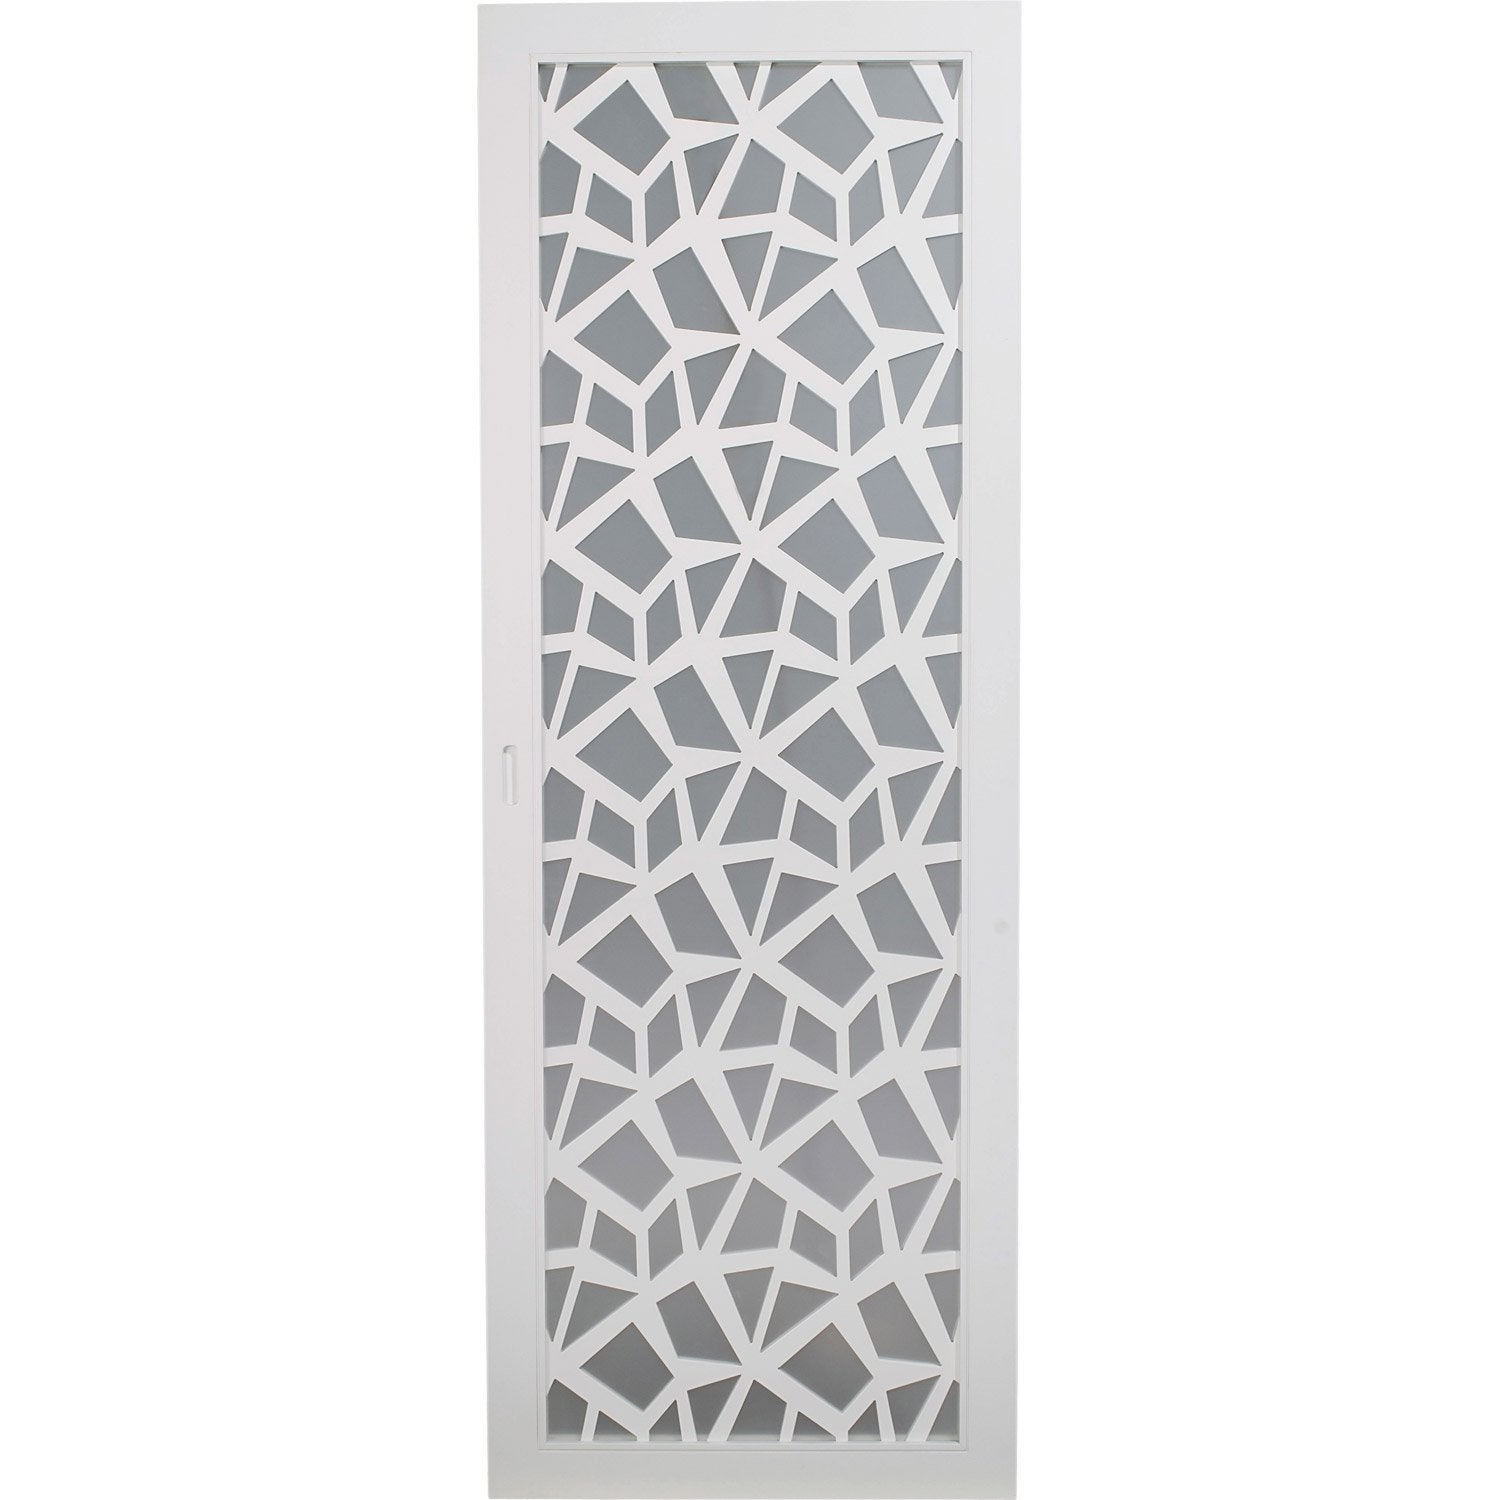 Porte coulissante plaqu blanc crash artens 204 x 73 cm - Porte coulissante encastrable leroy merlin ...